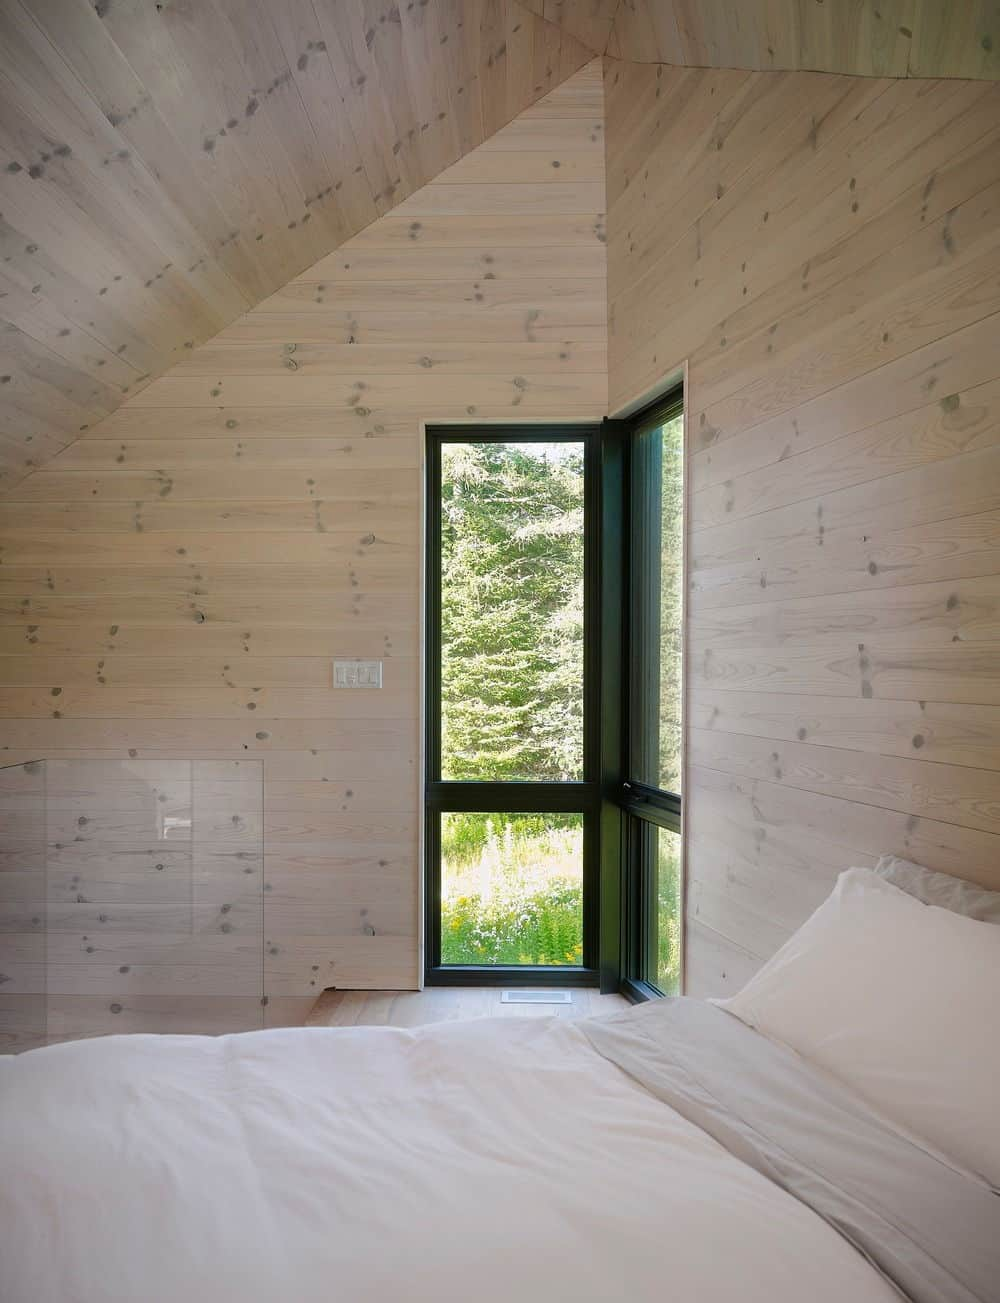 Another look of the bedroom featuring the hardwood walls and a glass corner window. Photo credit: Louis Prud'homme